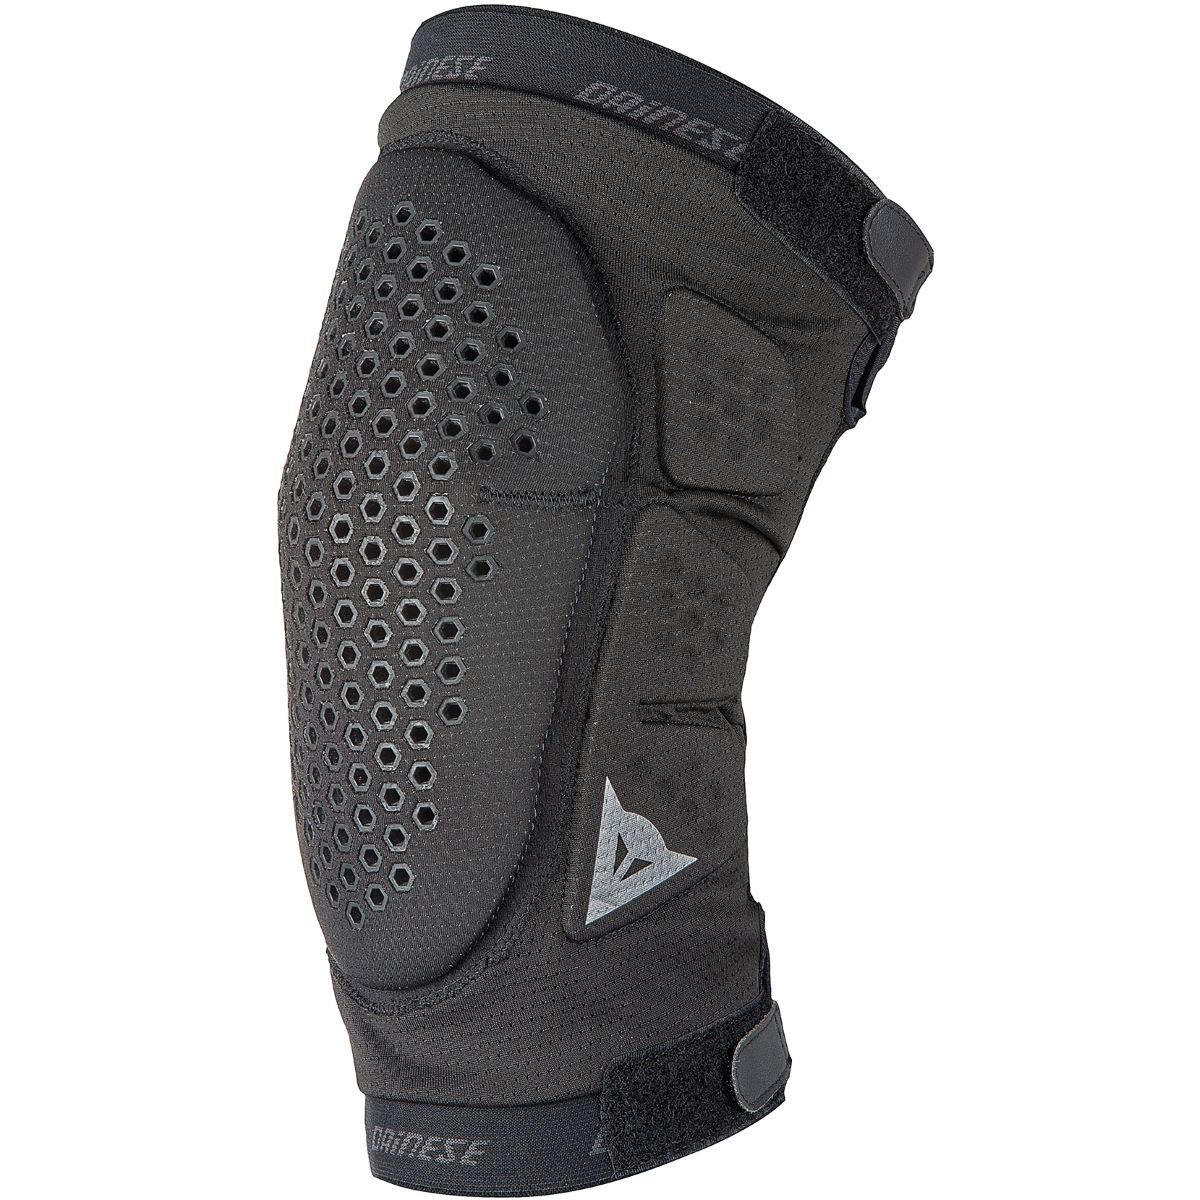 Dainese Dainese Trail Skins Knee Guard   Knee Pads